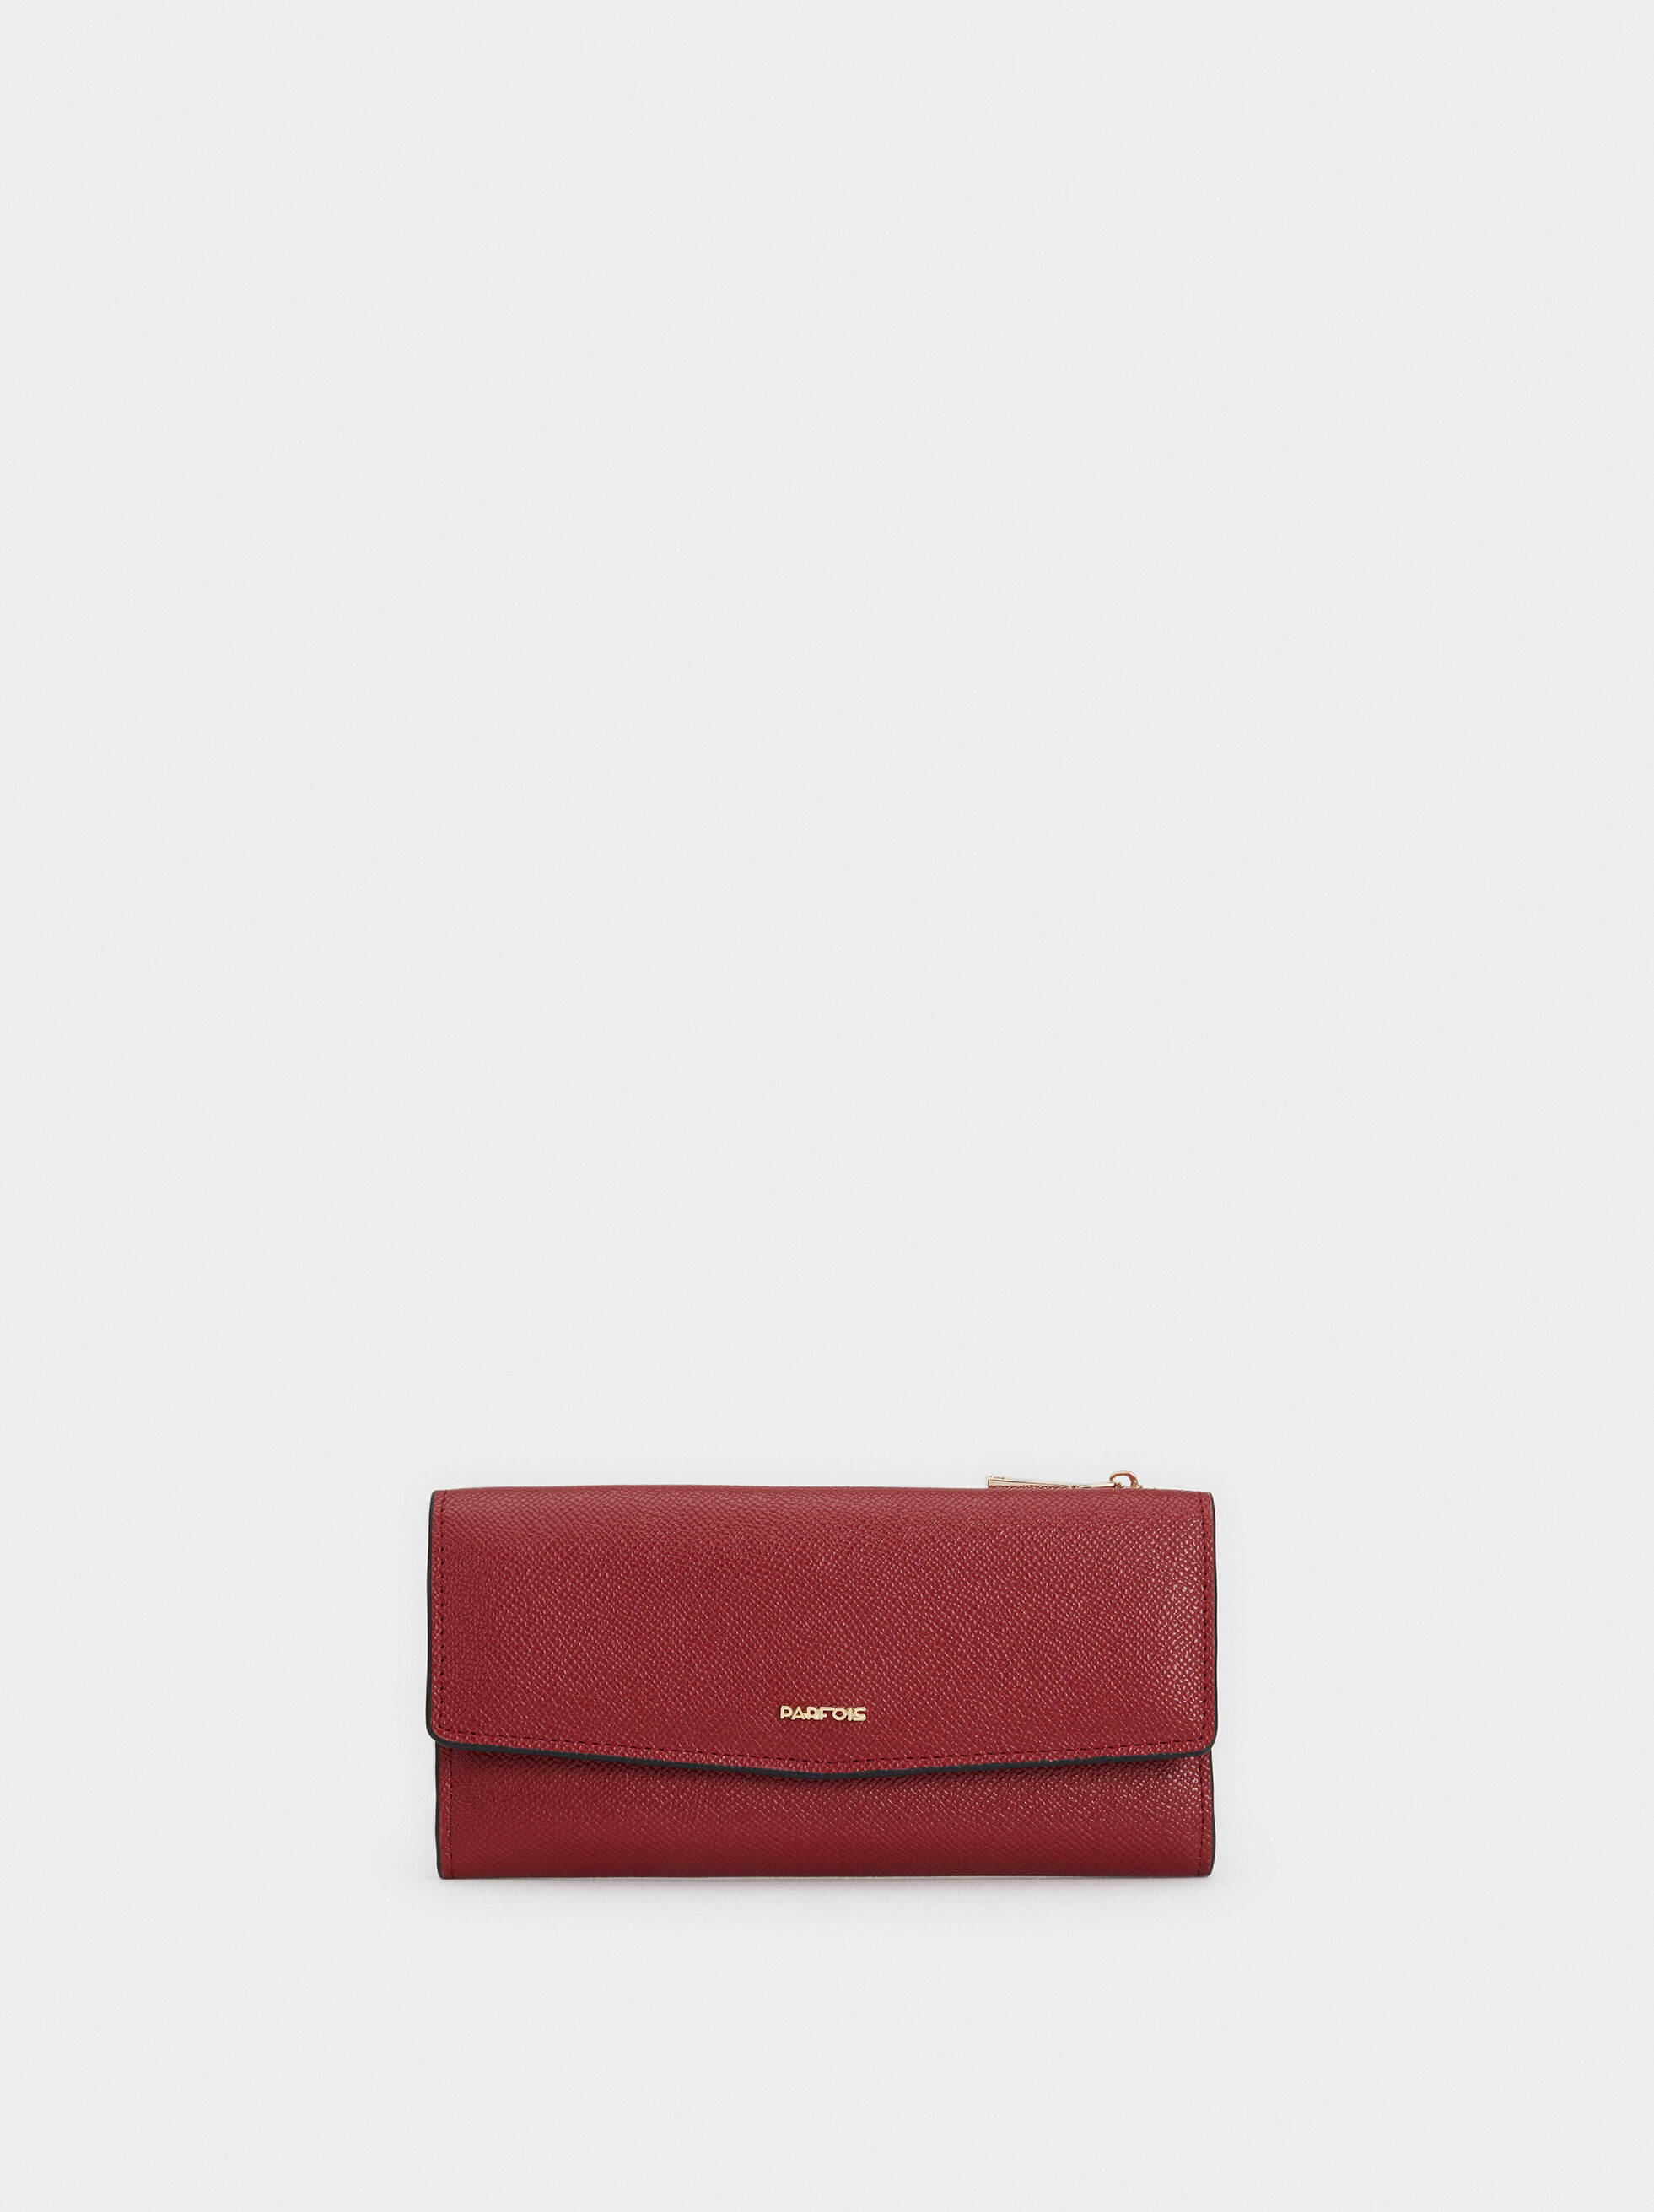 Large Purse With Flap, Red, hi-res